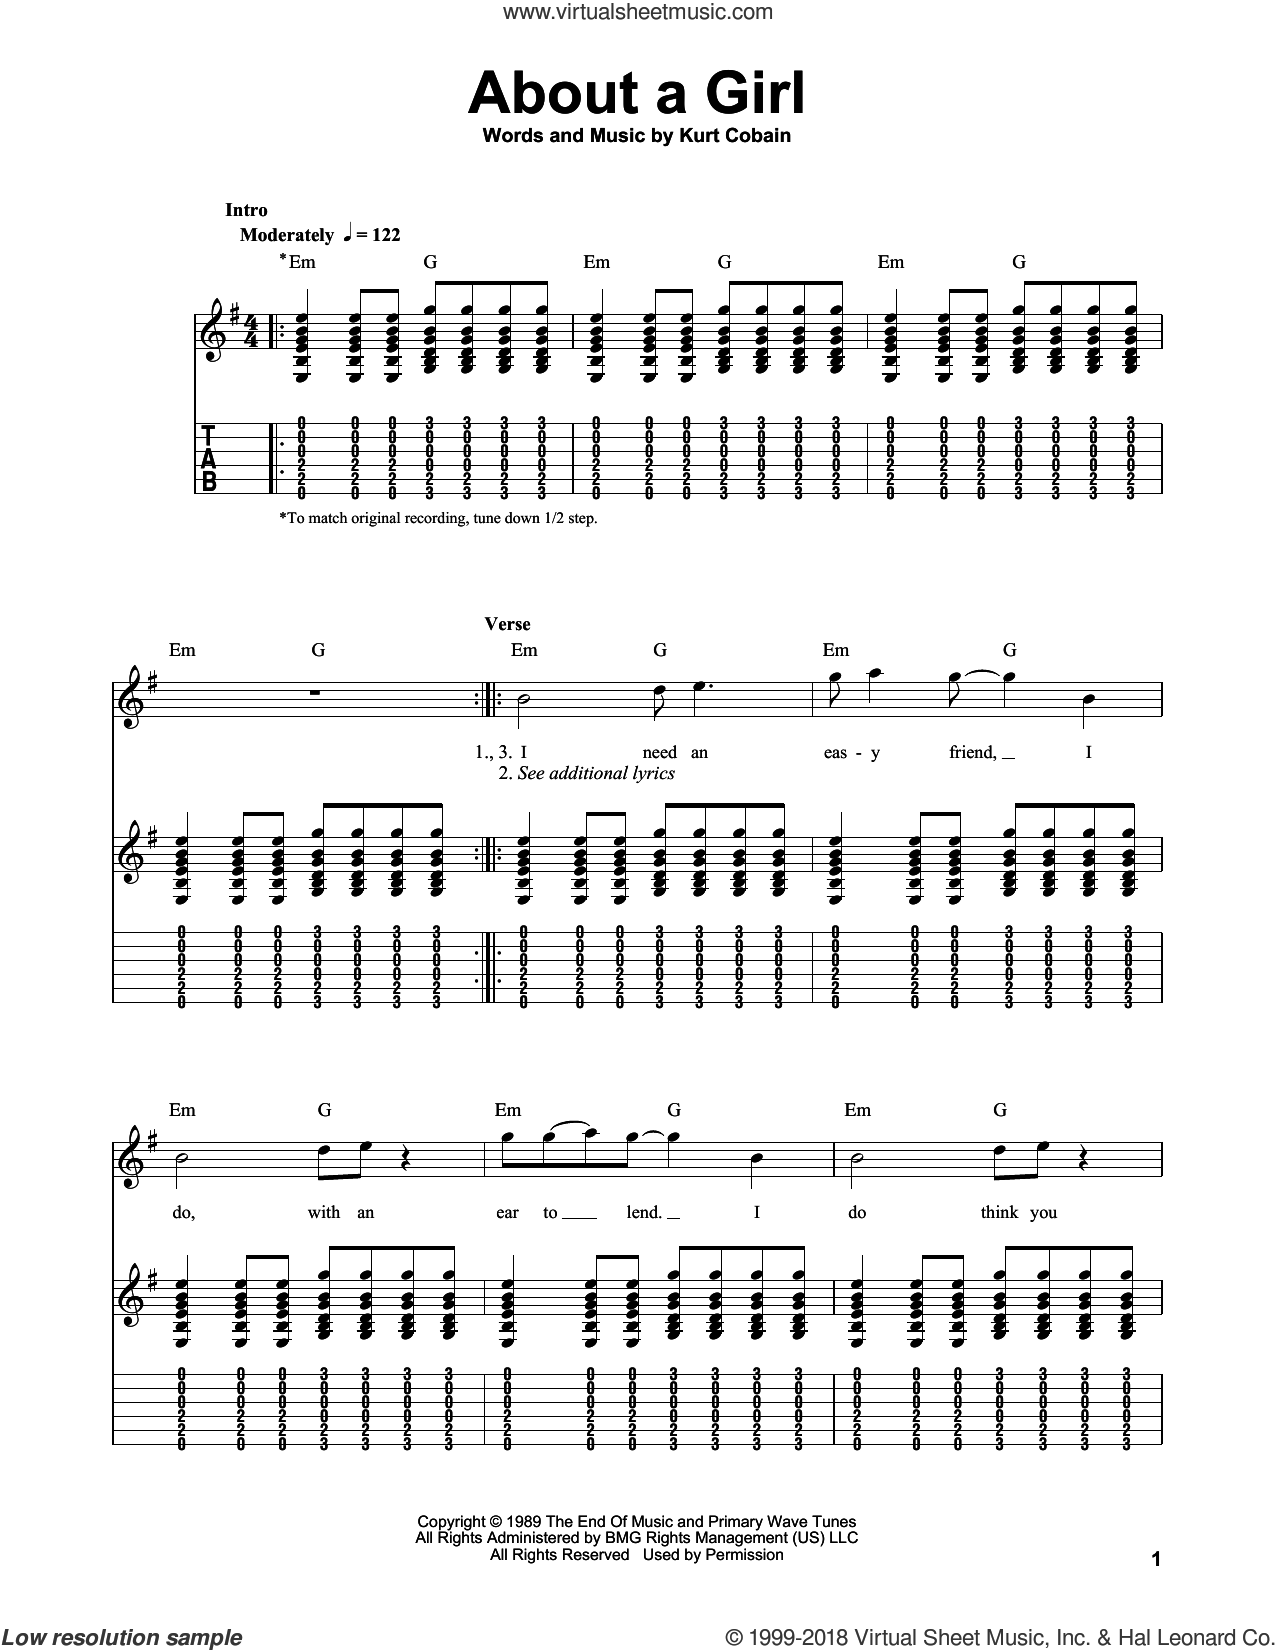 About A Girl sheet music for guitar solo (easy tablature) by Kurt Cobain